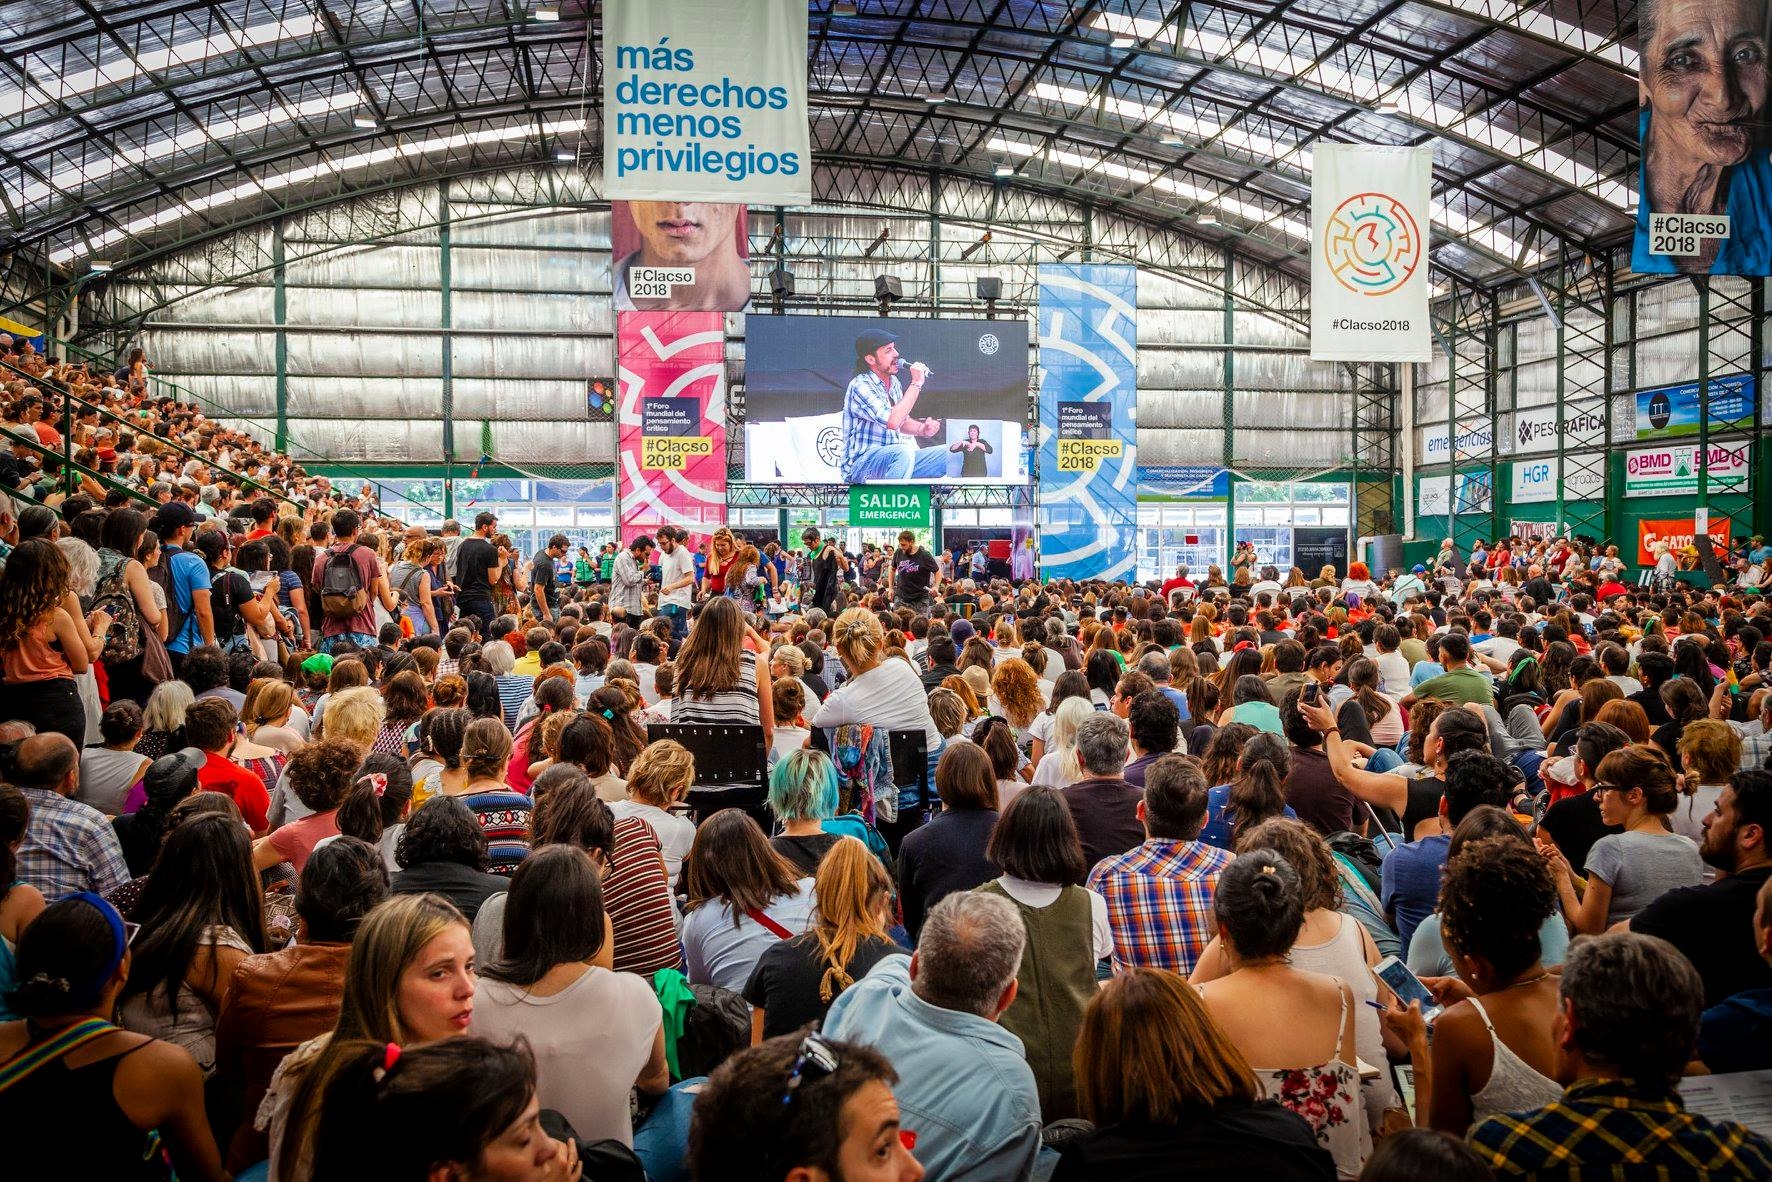 Thousands gathered on Monday November 19 for the International Forum of Critical Thought in Buenos Aires. Photo: CLACSO